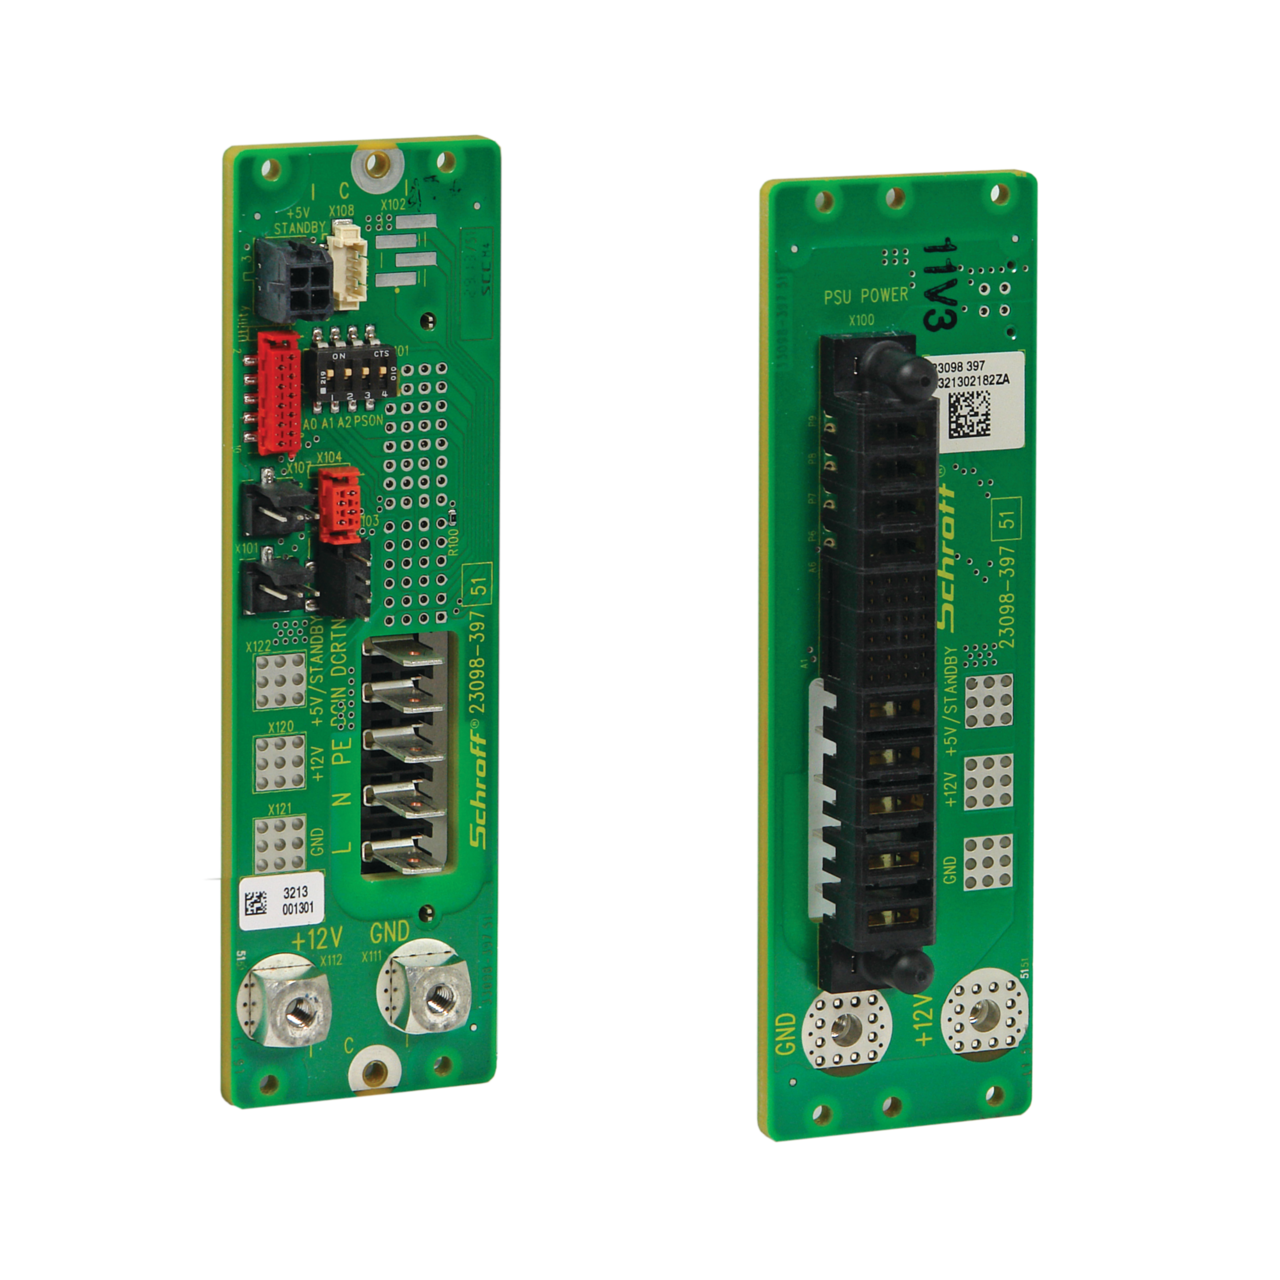 Image for Accessories for CompactPCI Serial backplanes from nVent SCHROFF | Europe, Middle East, Africa and India